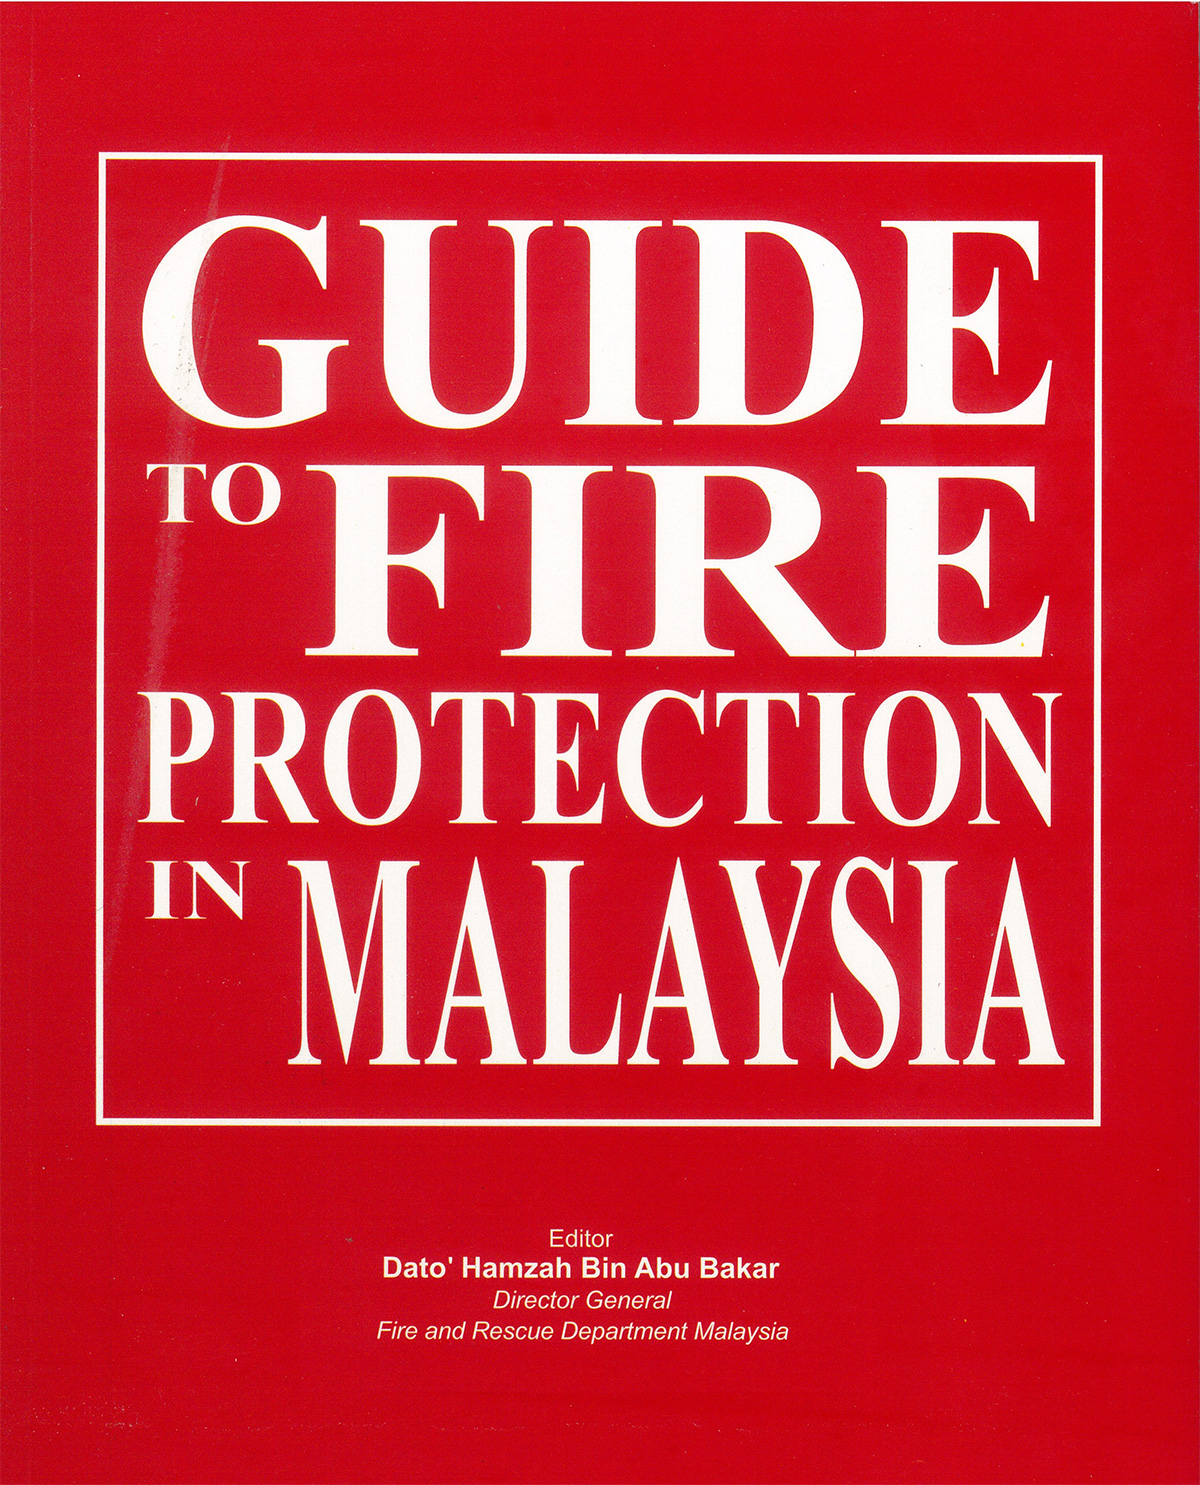 GUIDE_TO_FIRE_PROTECTION_IN_MALAYSIA